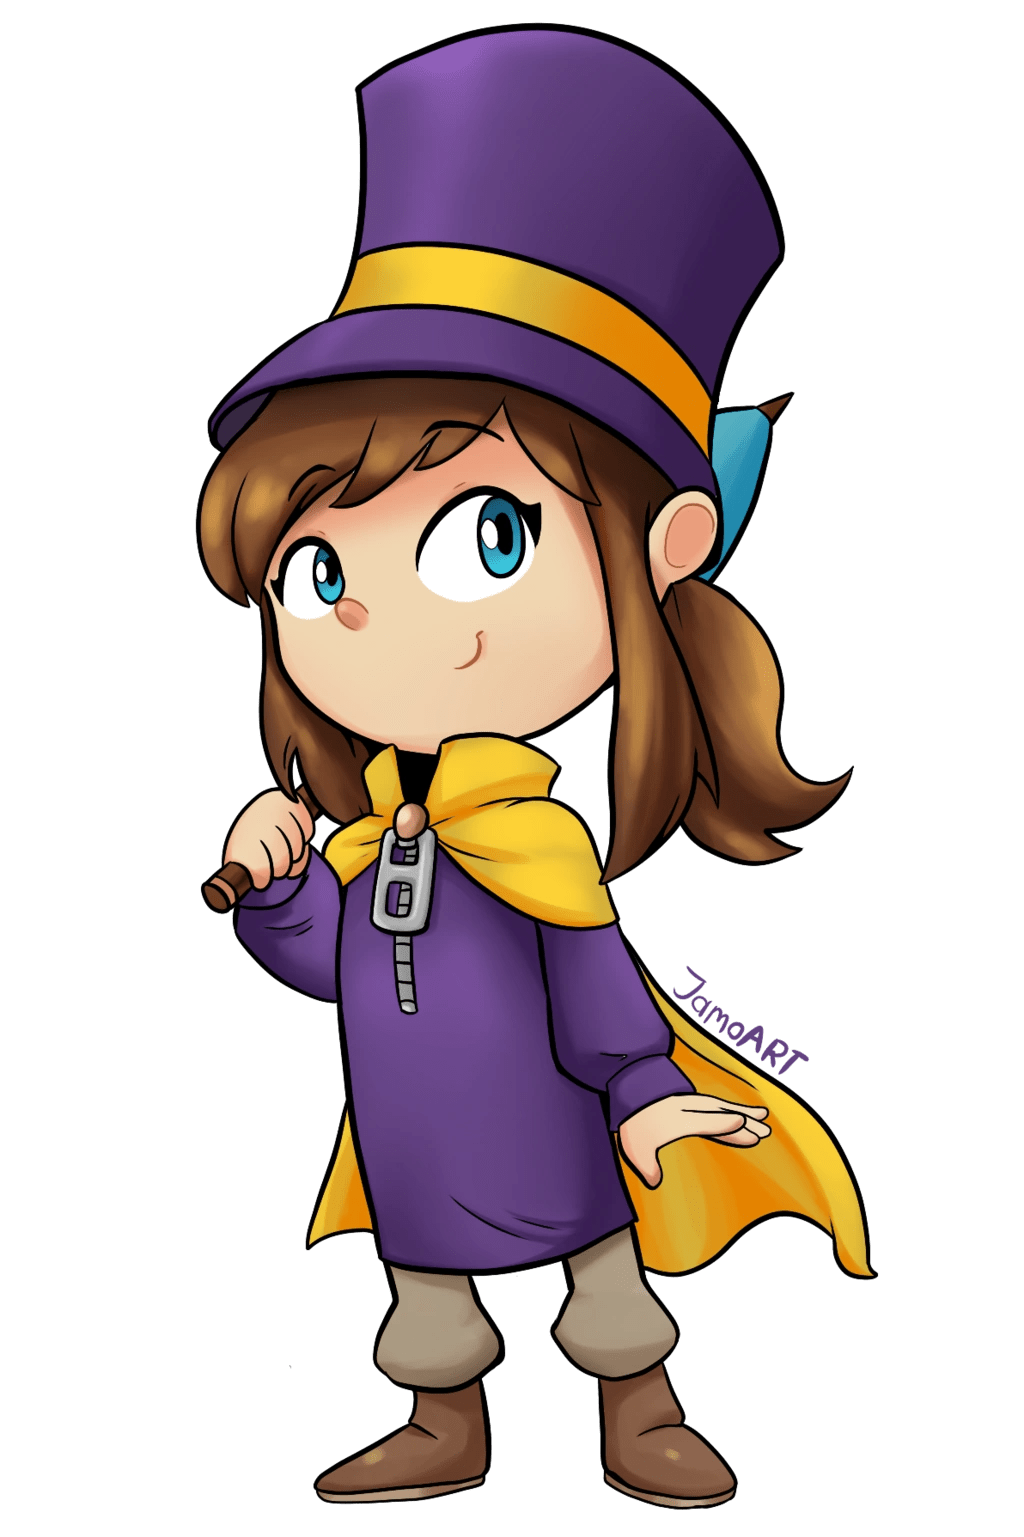 Night Vale Gravity Falls Wallpaper Hat Kid The Mystery Kids Wiki Fandom Powered By Wikia